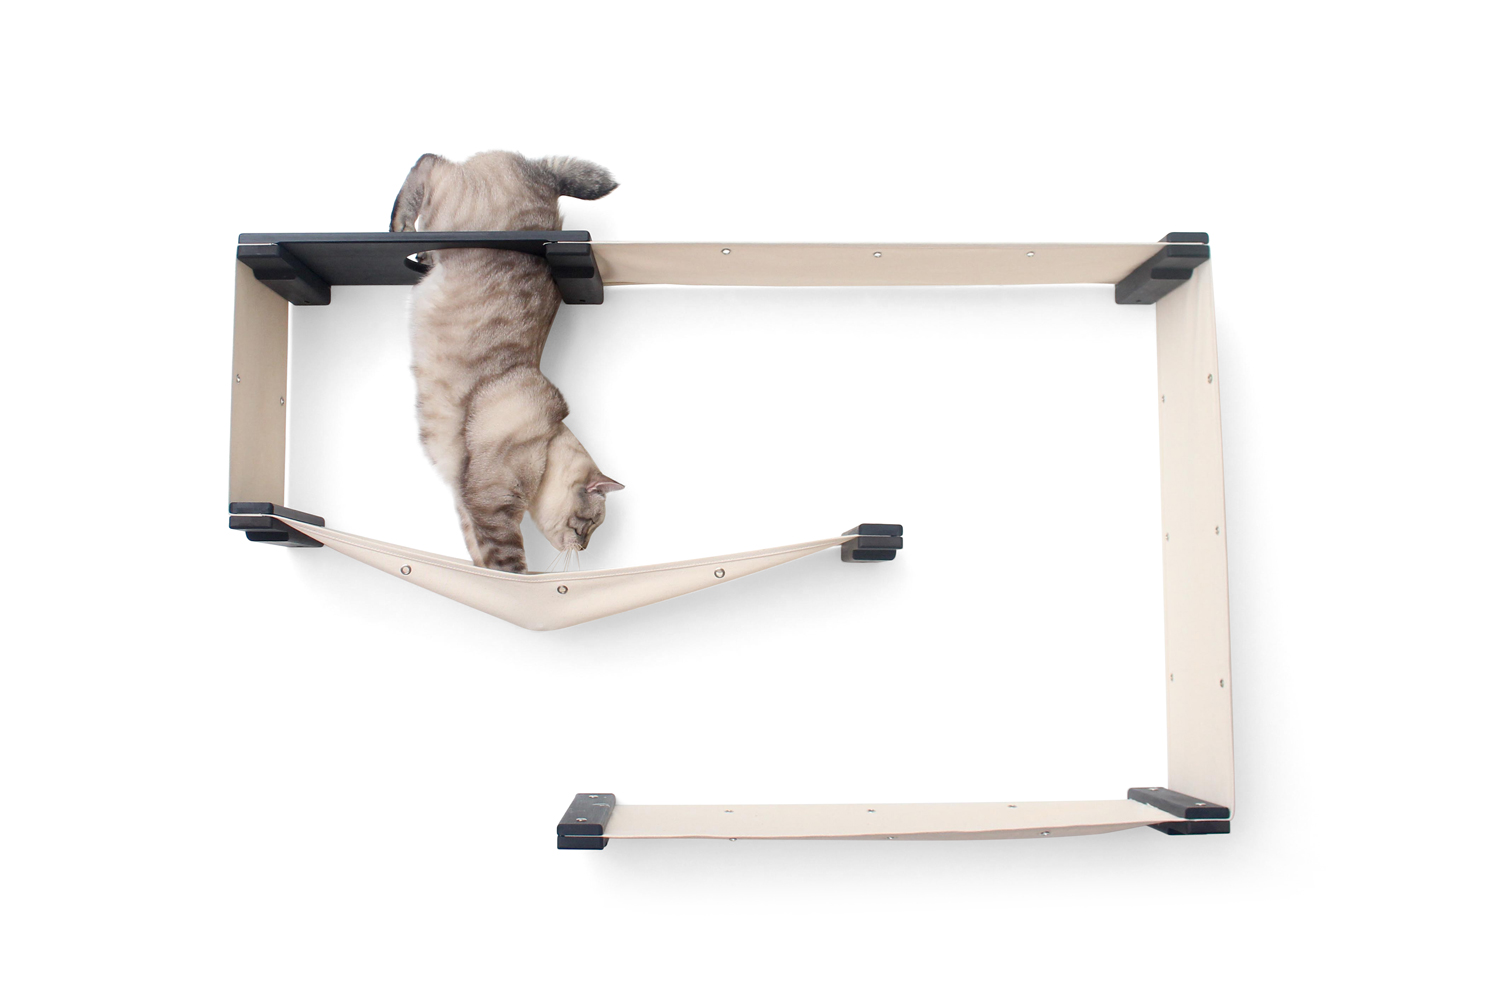 cat climbing through escape hatch of wall mounted cat furniture